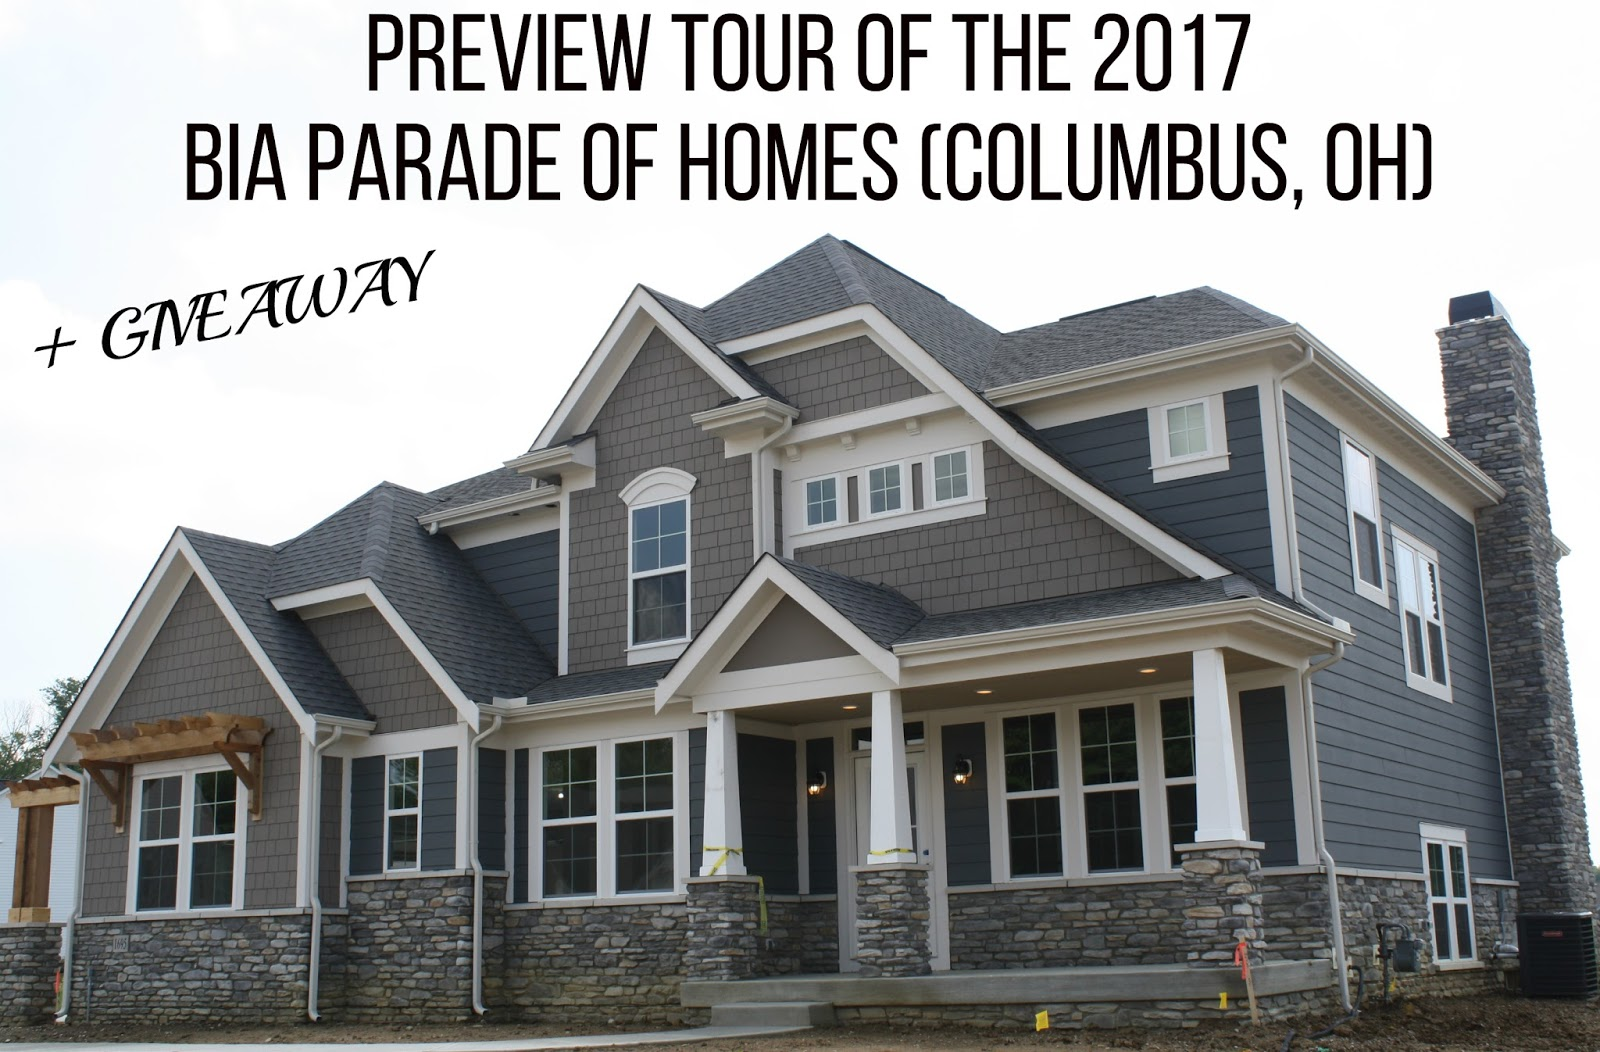 Bg By Christina Lifestyle Preview Tour Of The 2017 Bia